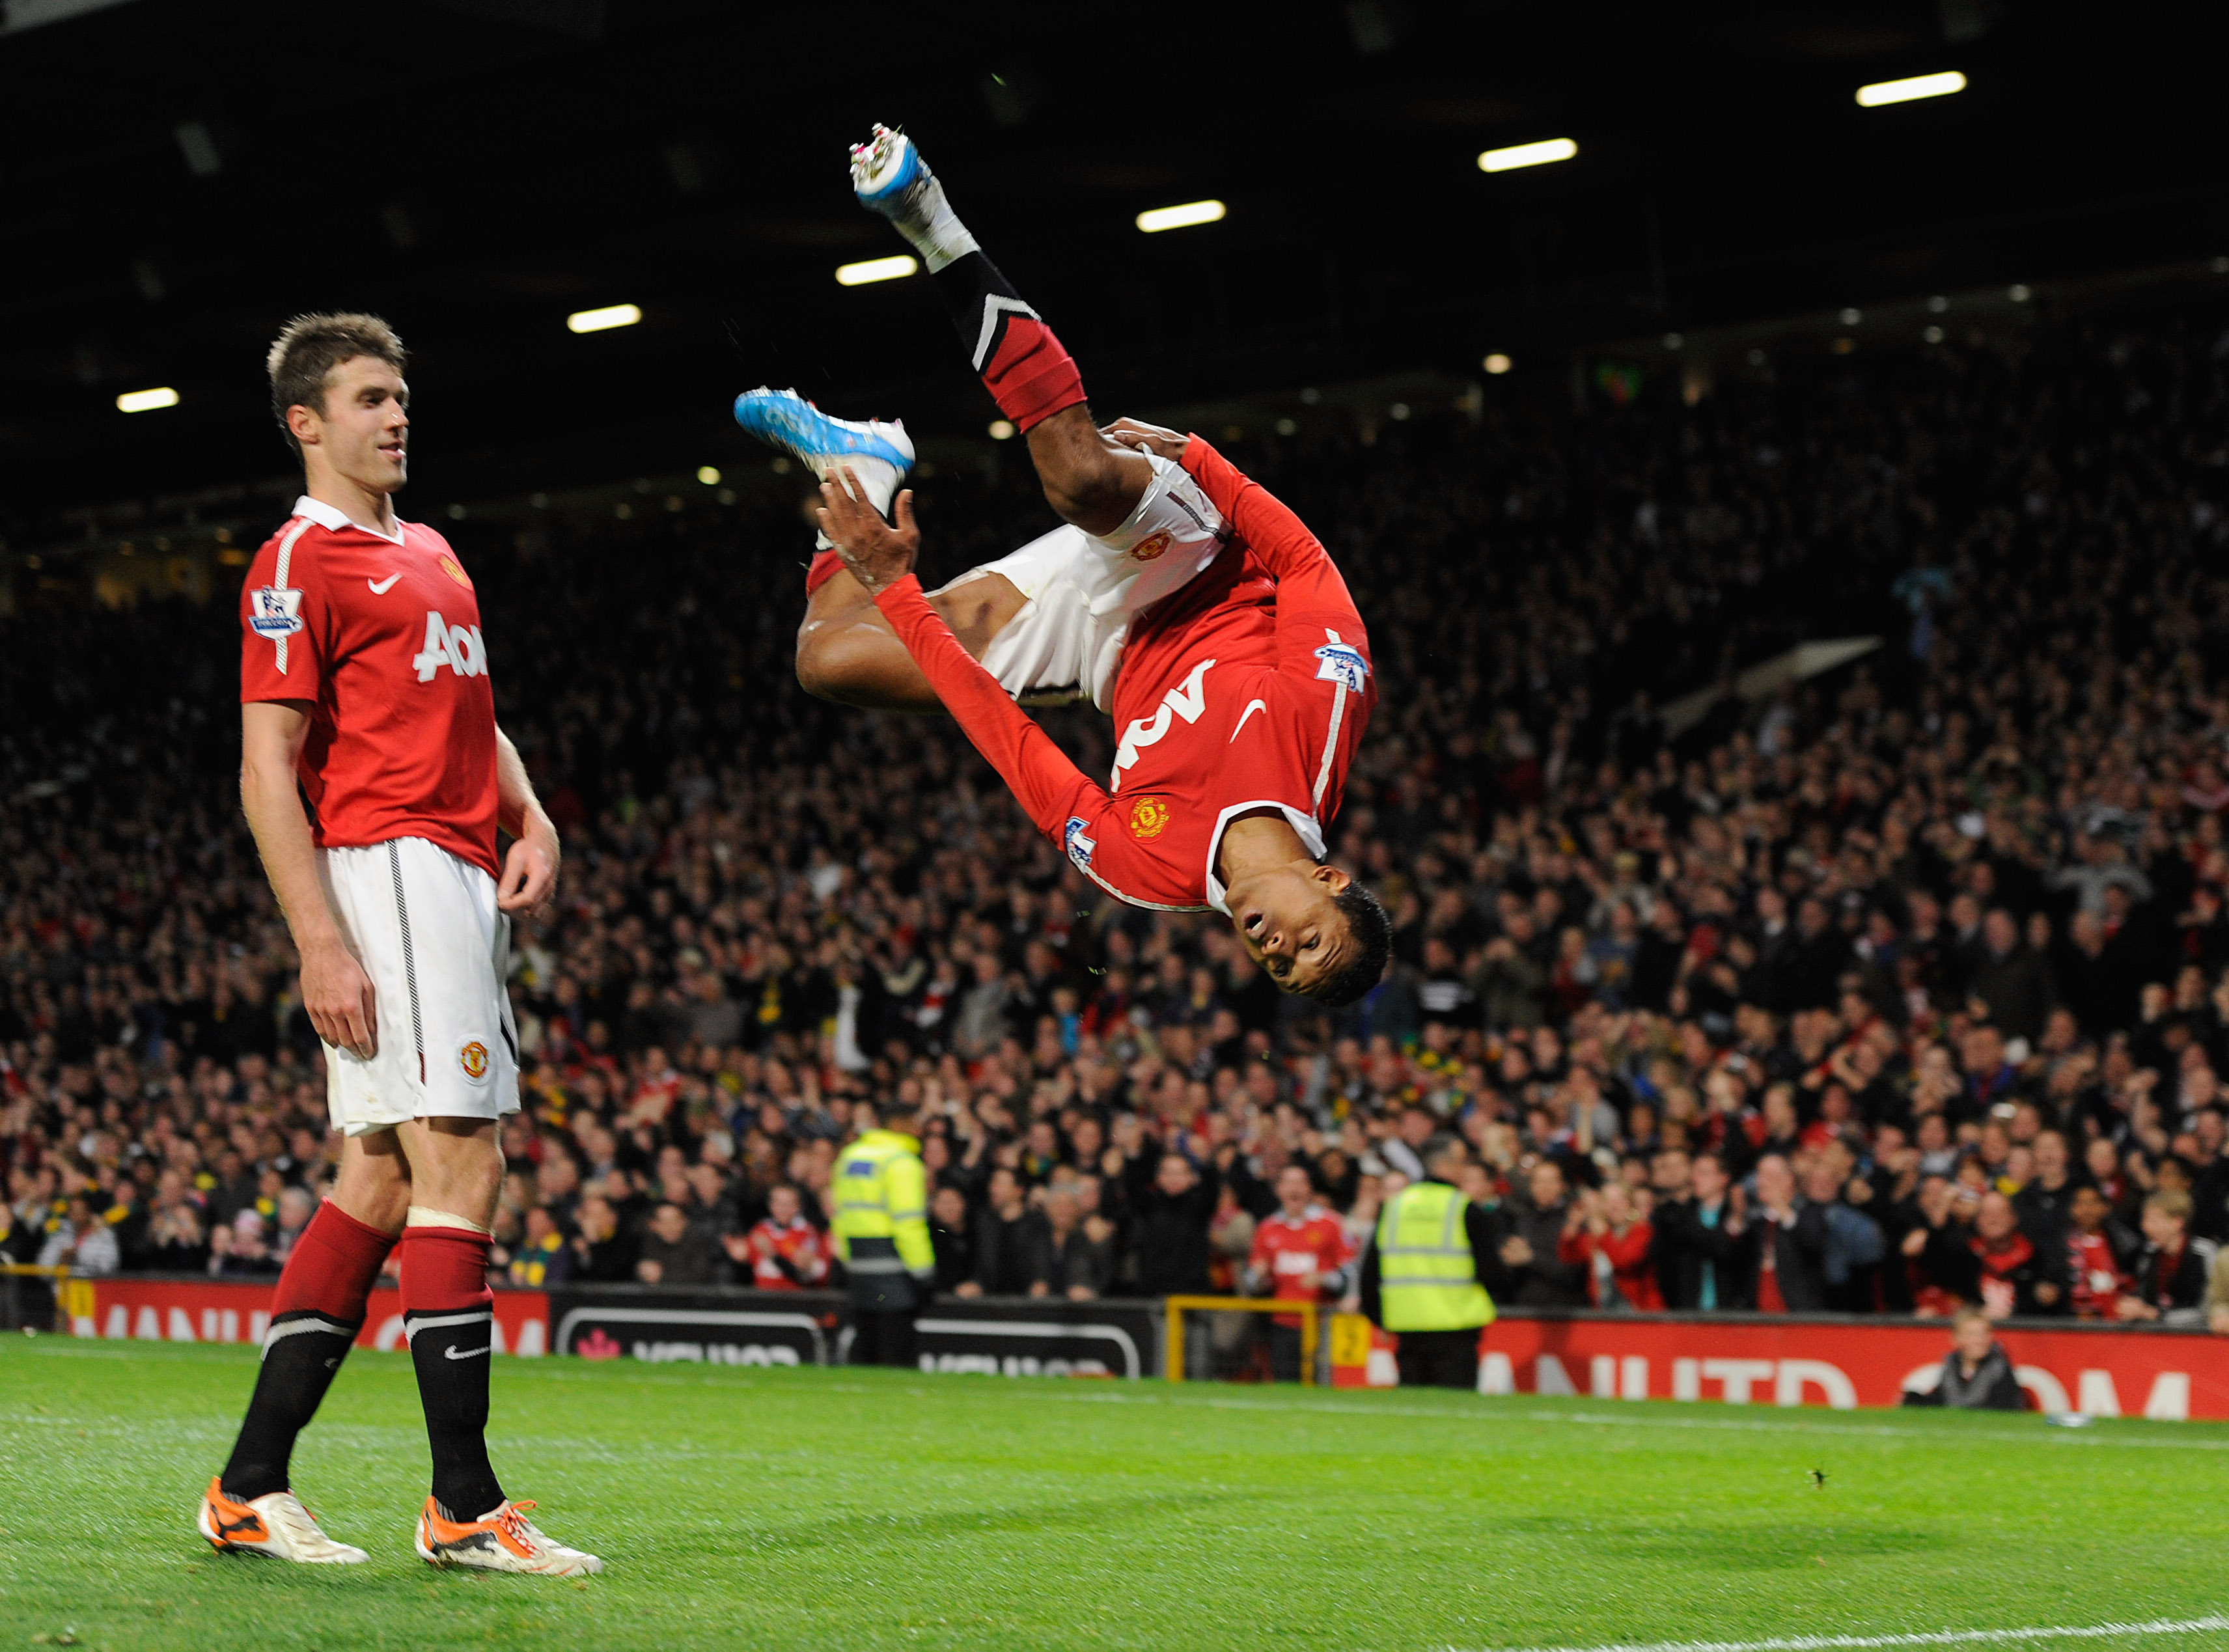 MANCHESTER, ENGLAND - OCTOBER 30: Nani of Manchester United celebrates scoring to make it 2-0 during the Barclays Premier League match between Manchester United and Tottenham Hotspur at Old Trafford on October 30, 2010 in Manchester, England.  (Photo by M